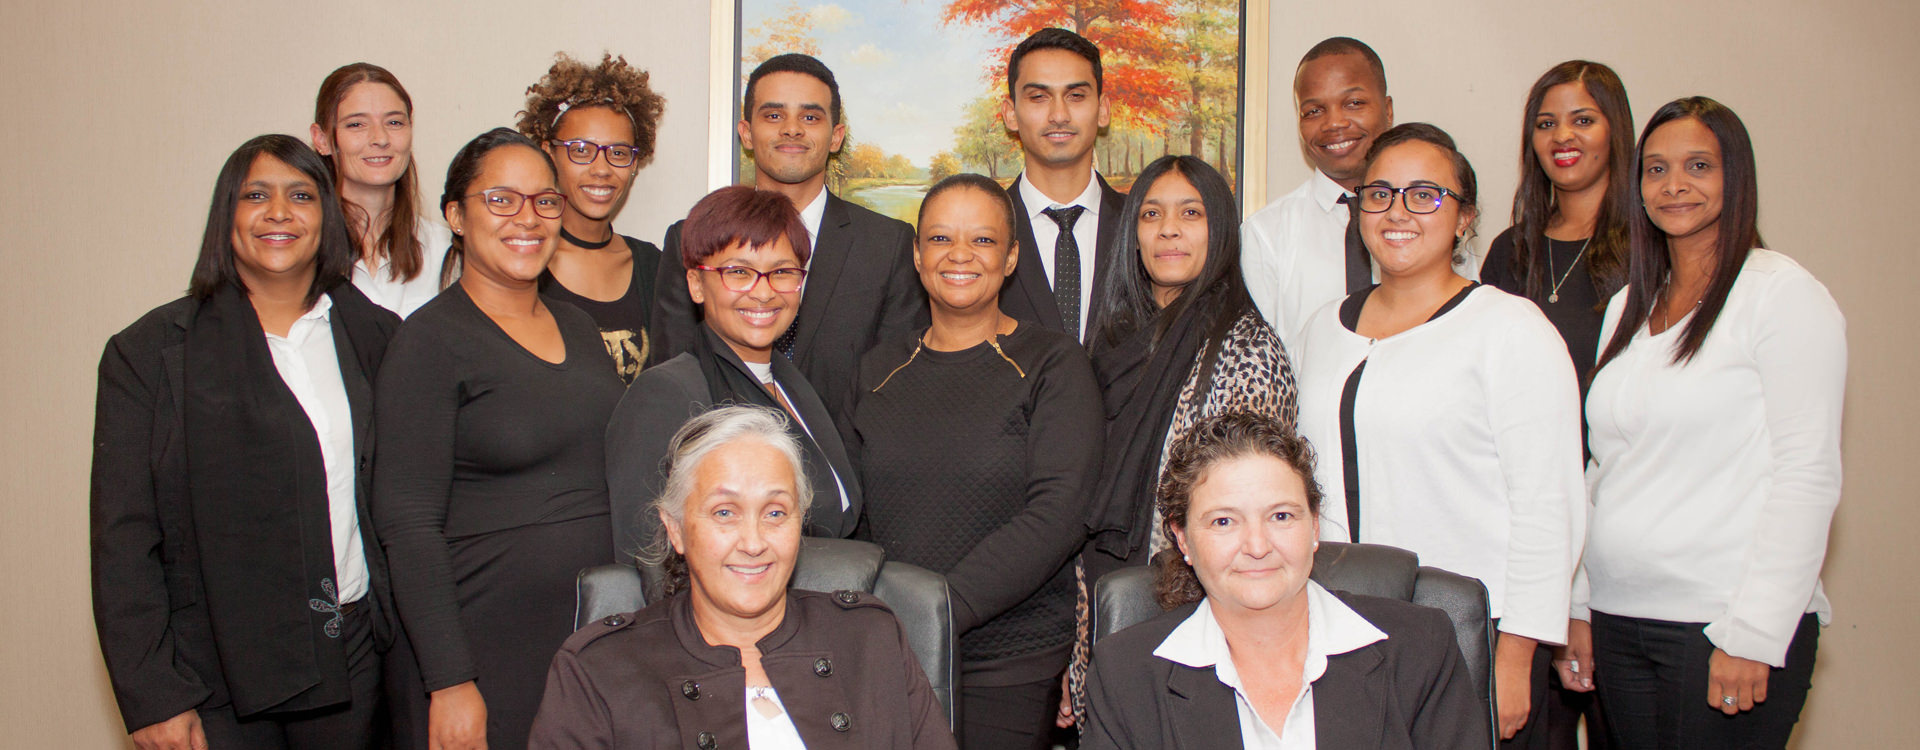 Support Staff at Kim Armfield and Associates in Cape Town